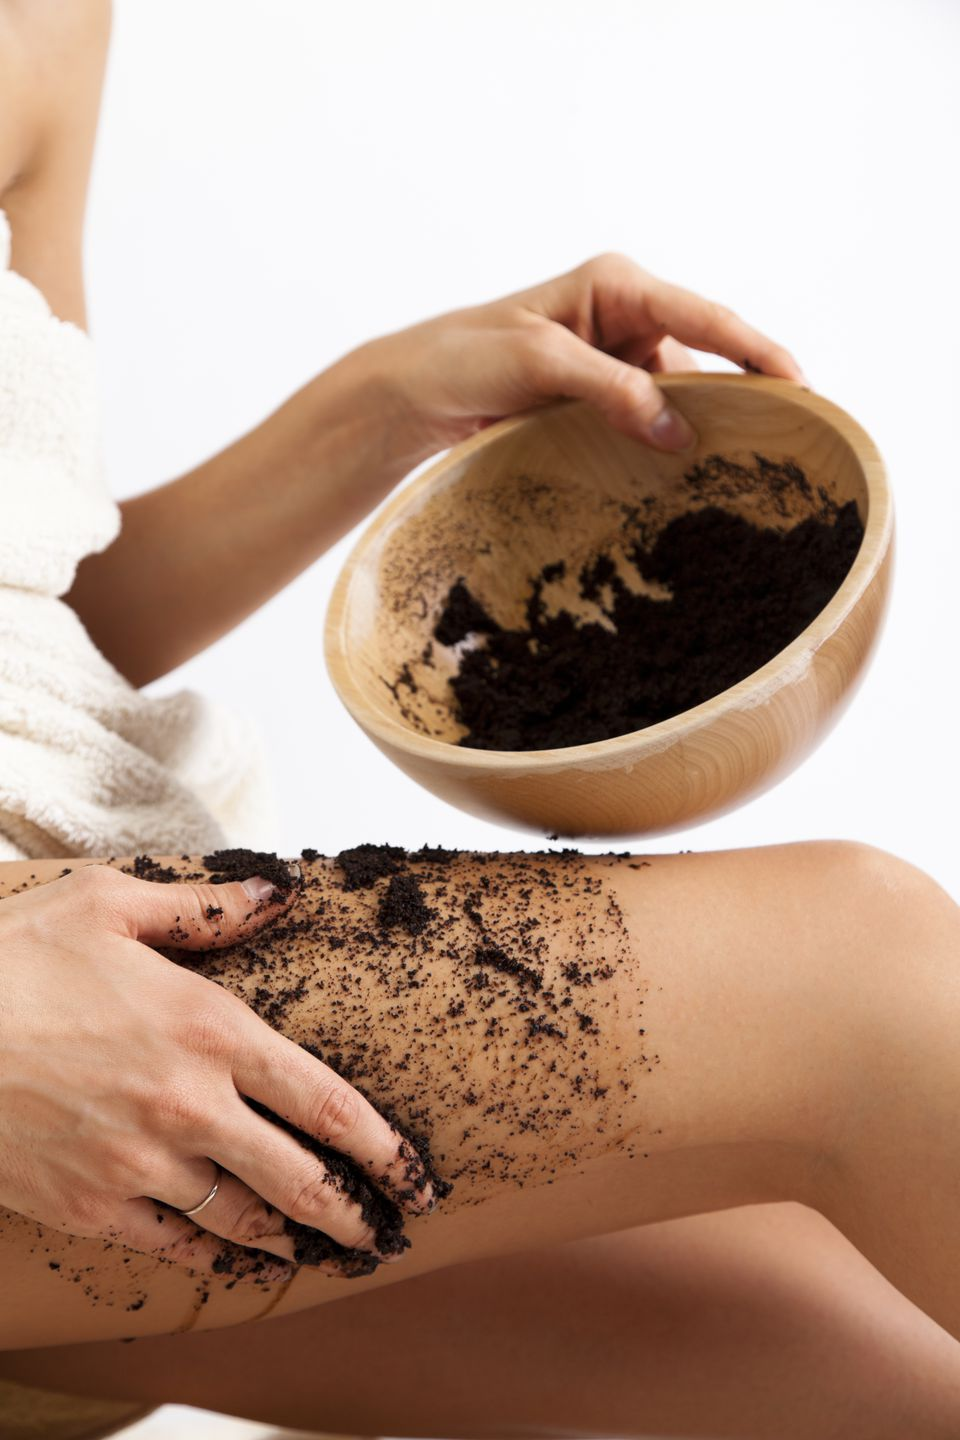 Natural body care. Cellulite massage with coffee scrub